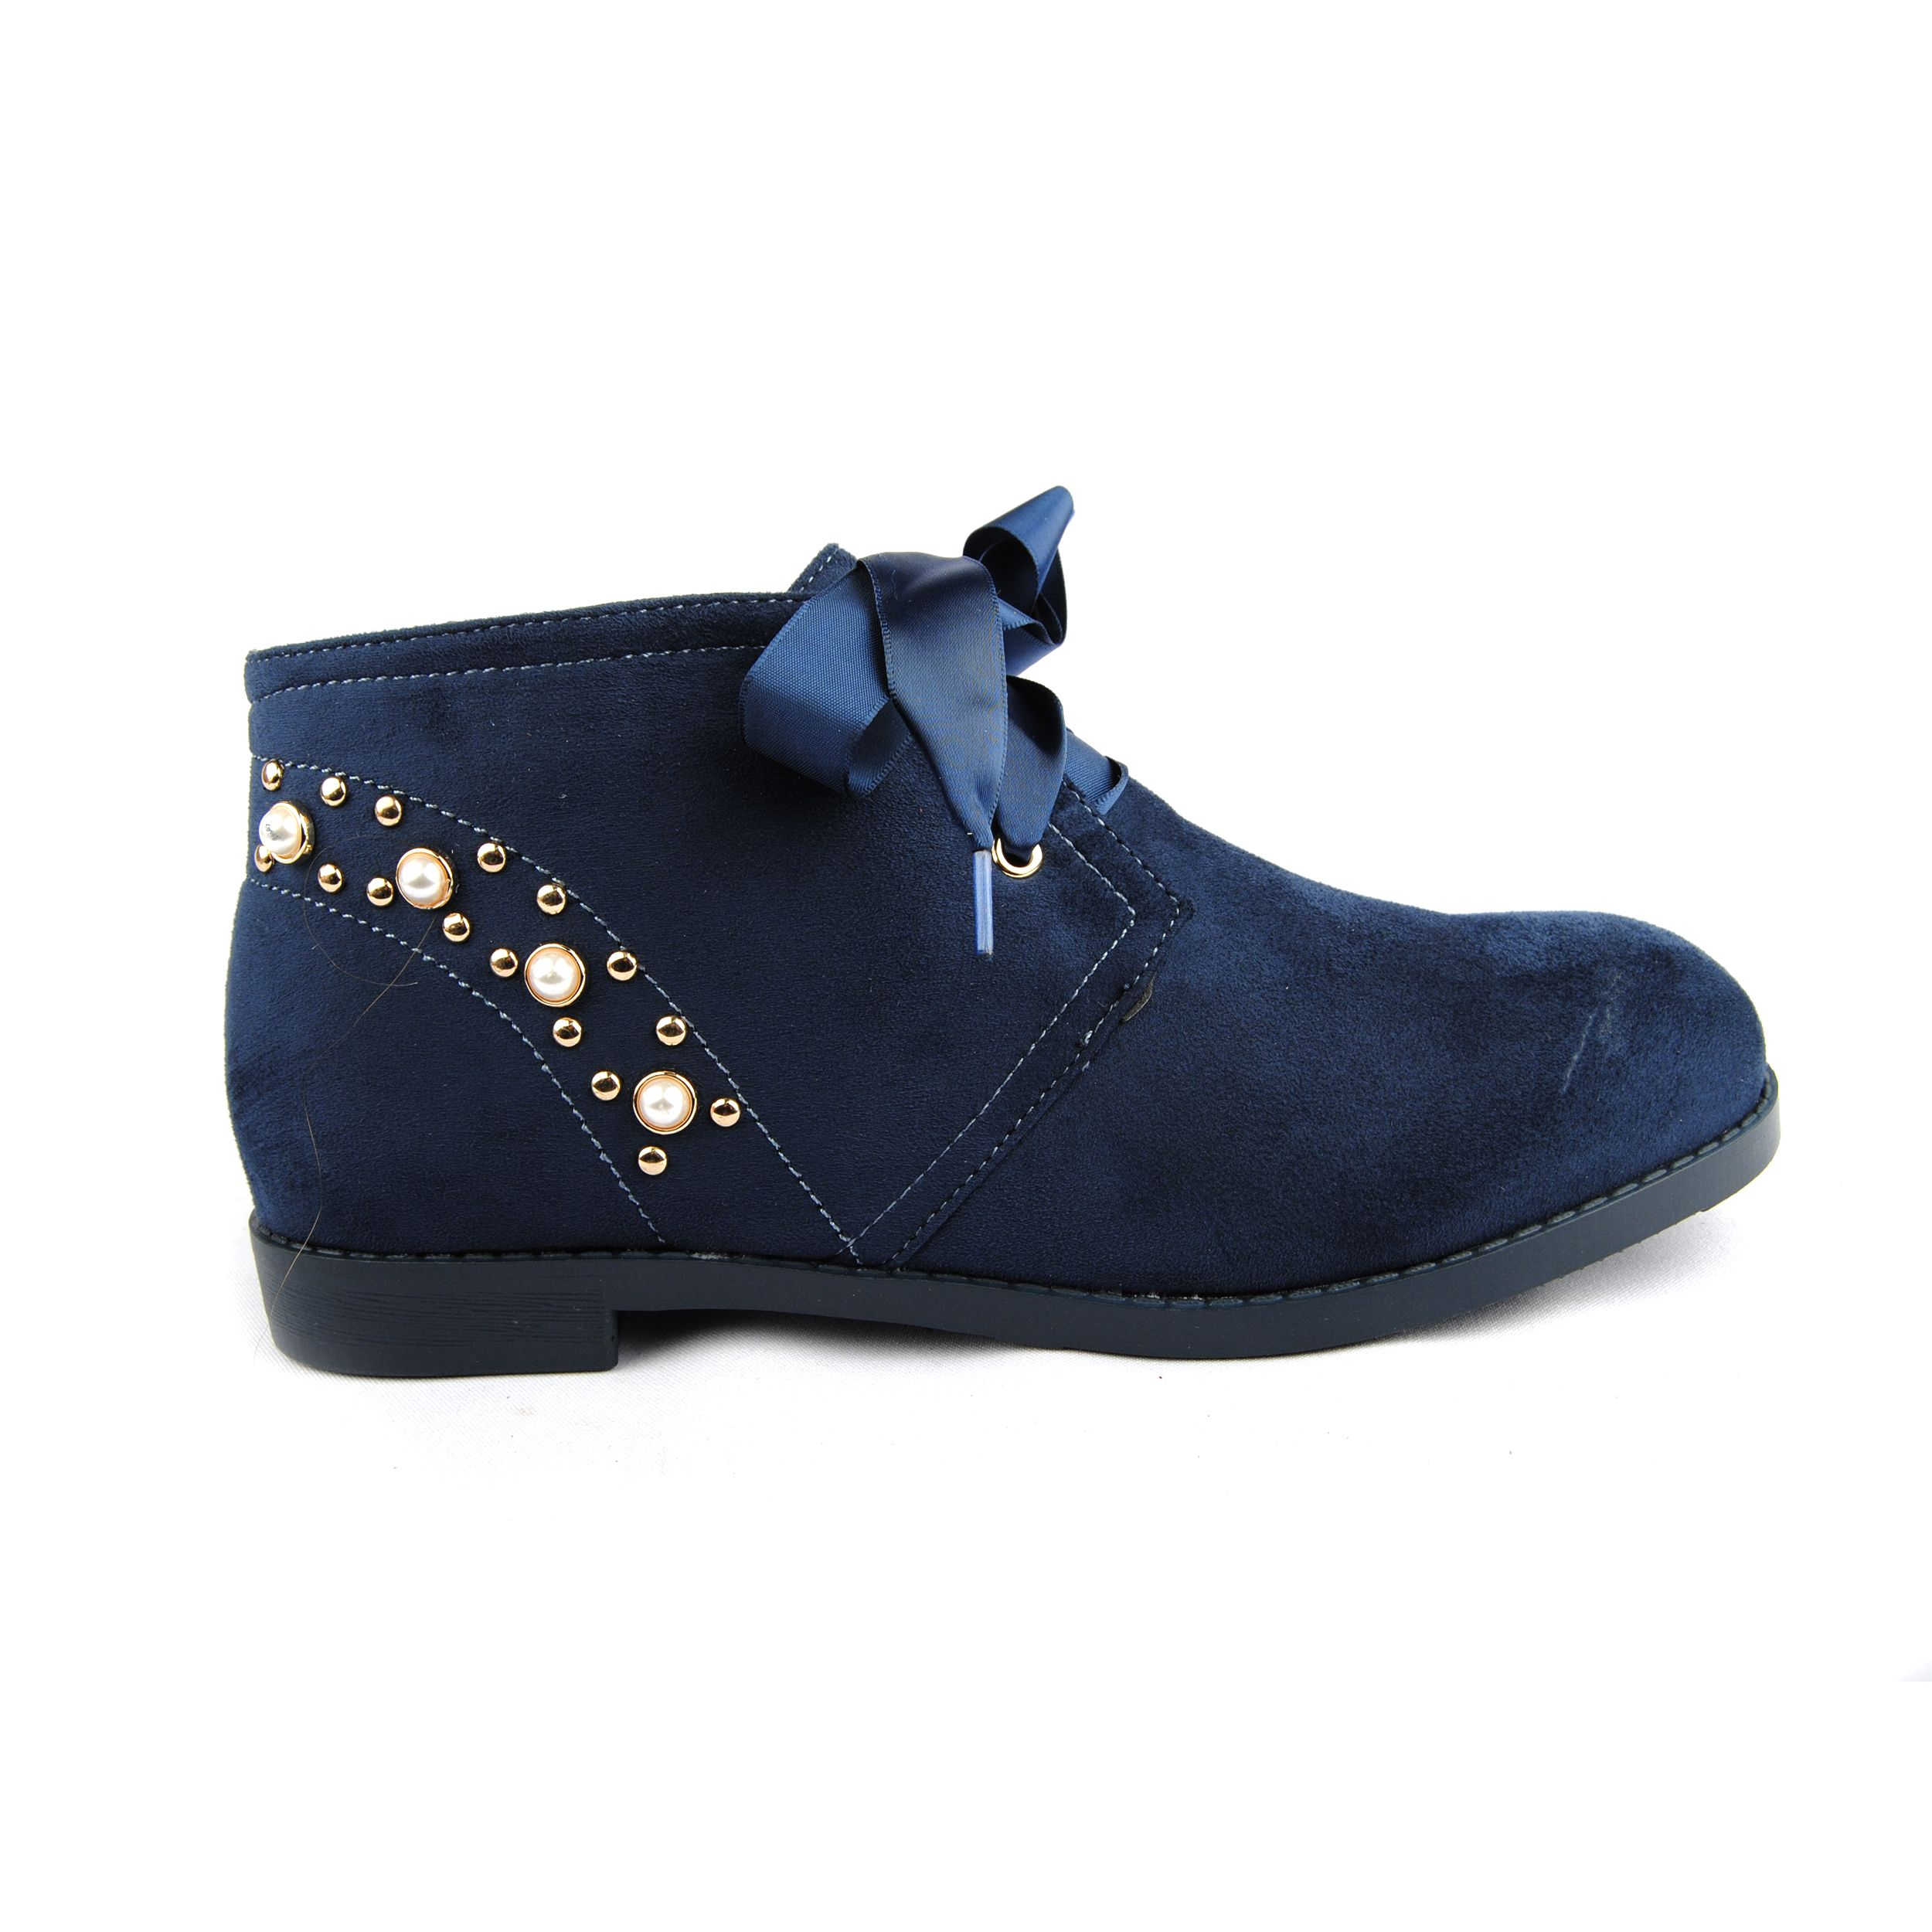 Montevita Lace Up Ankle Boot in Blue